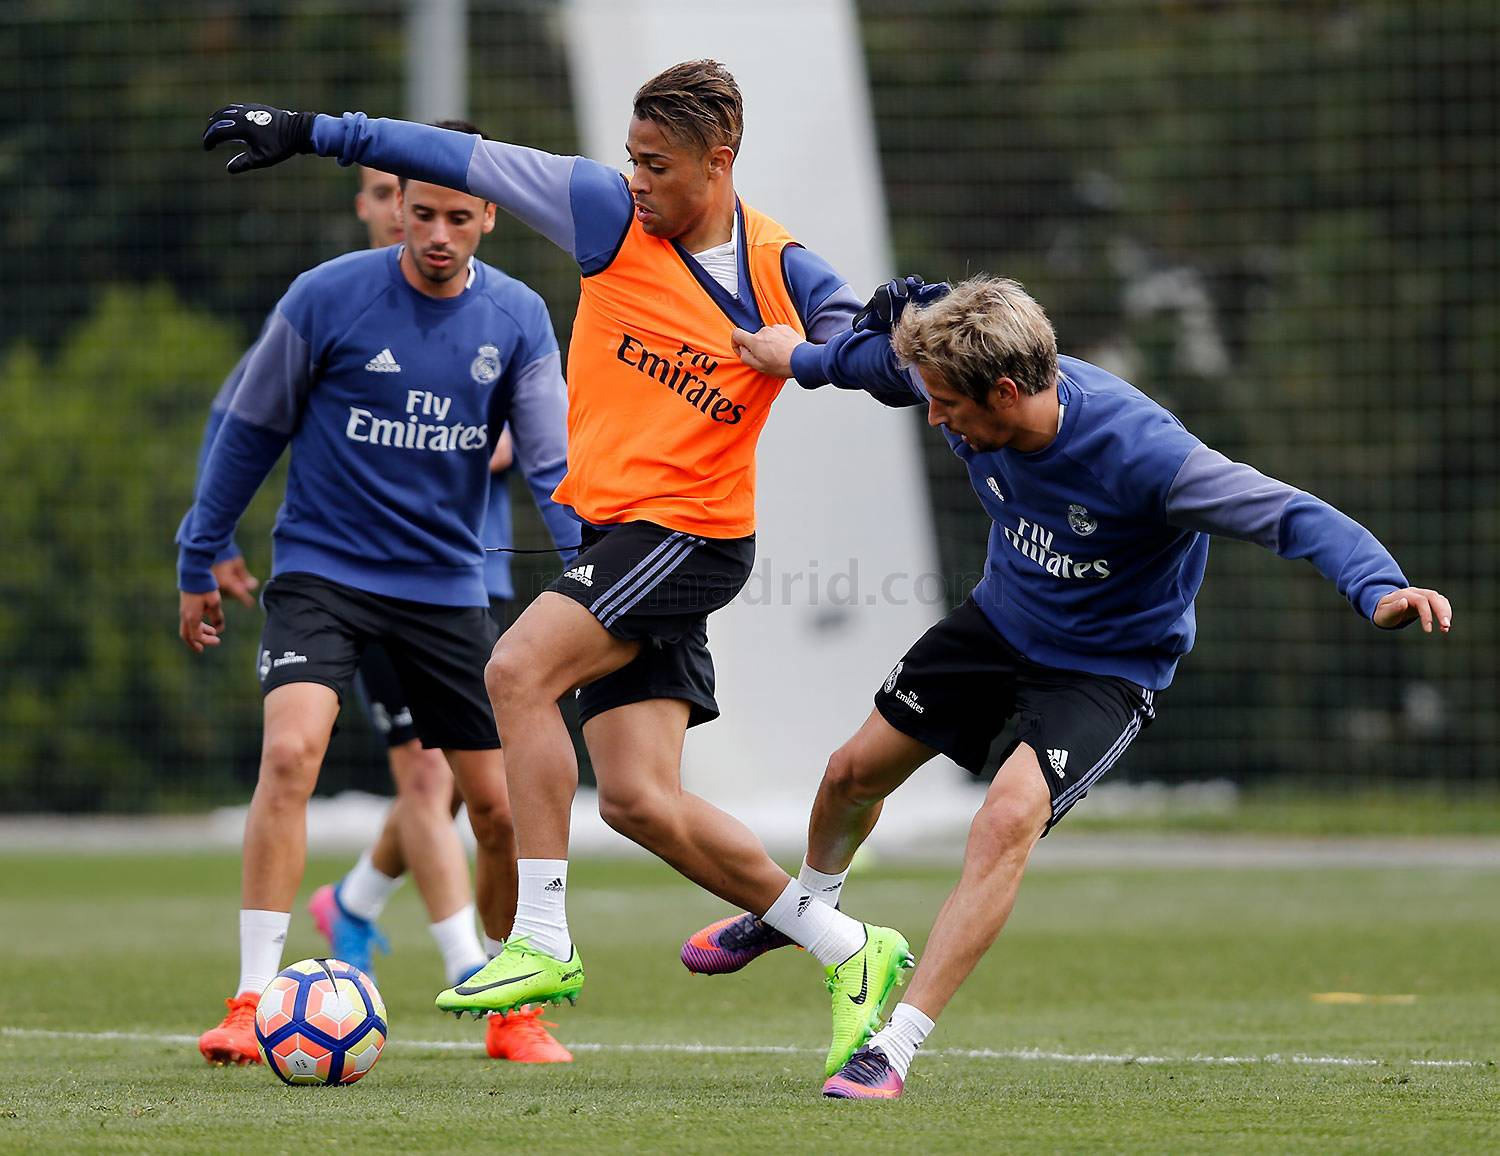 Real Madrid - Entrenamiento del Real Madrid - 22-03-2017